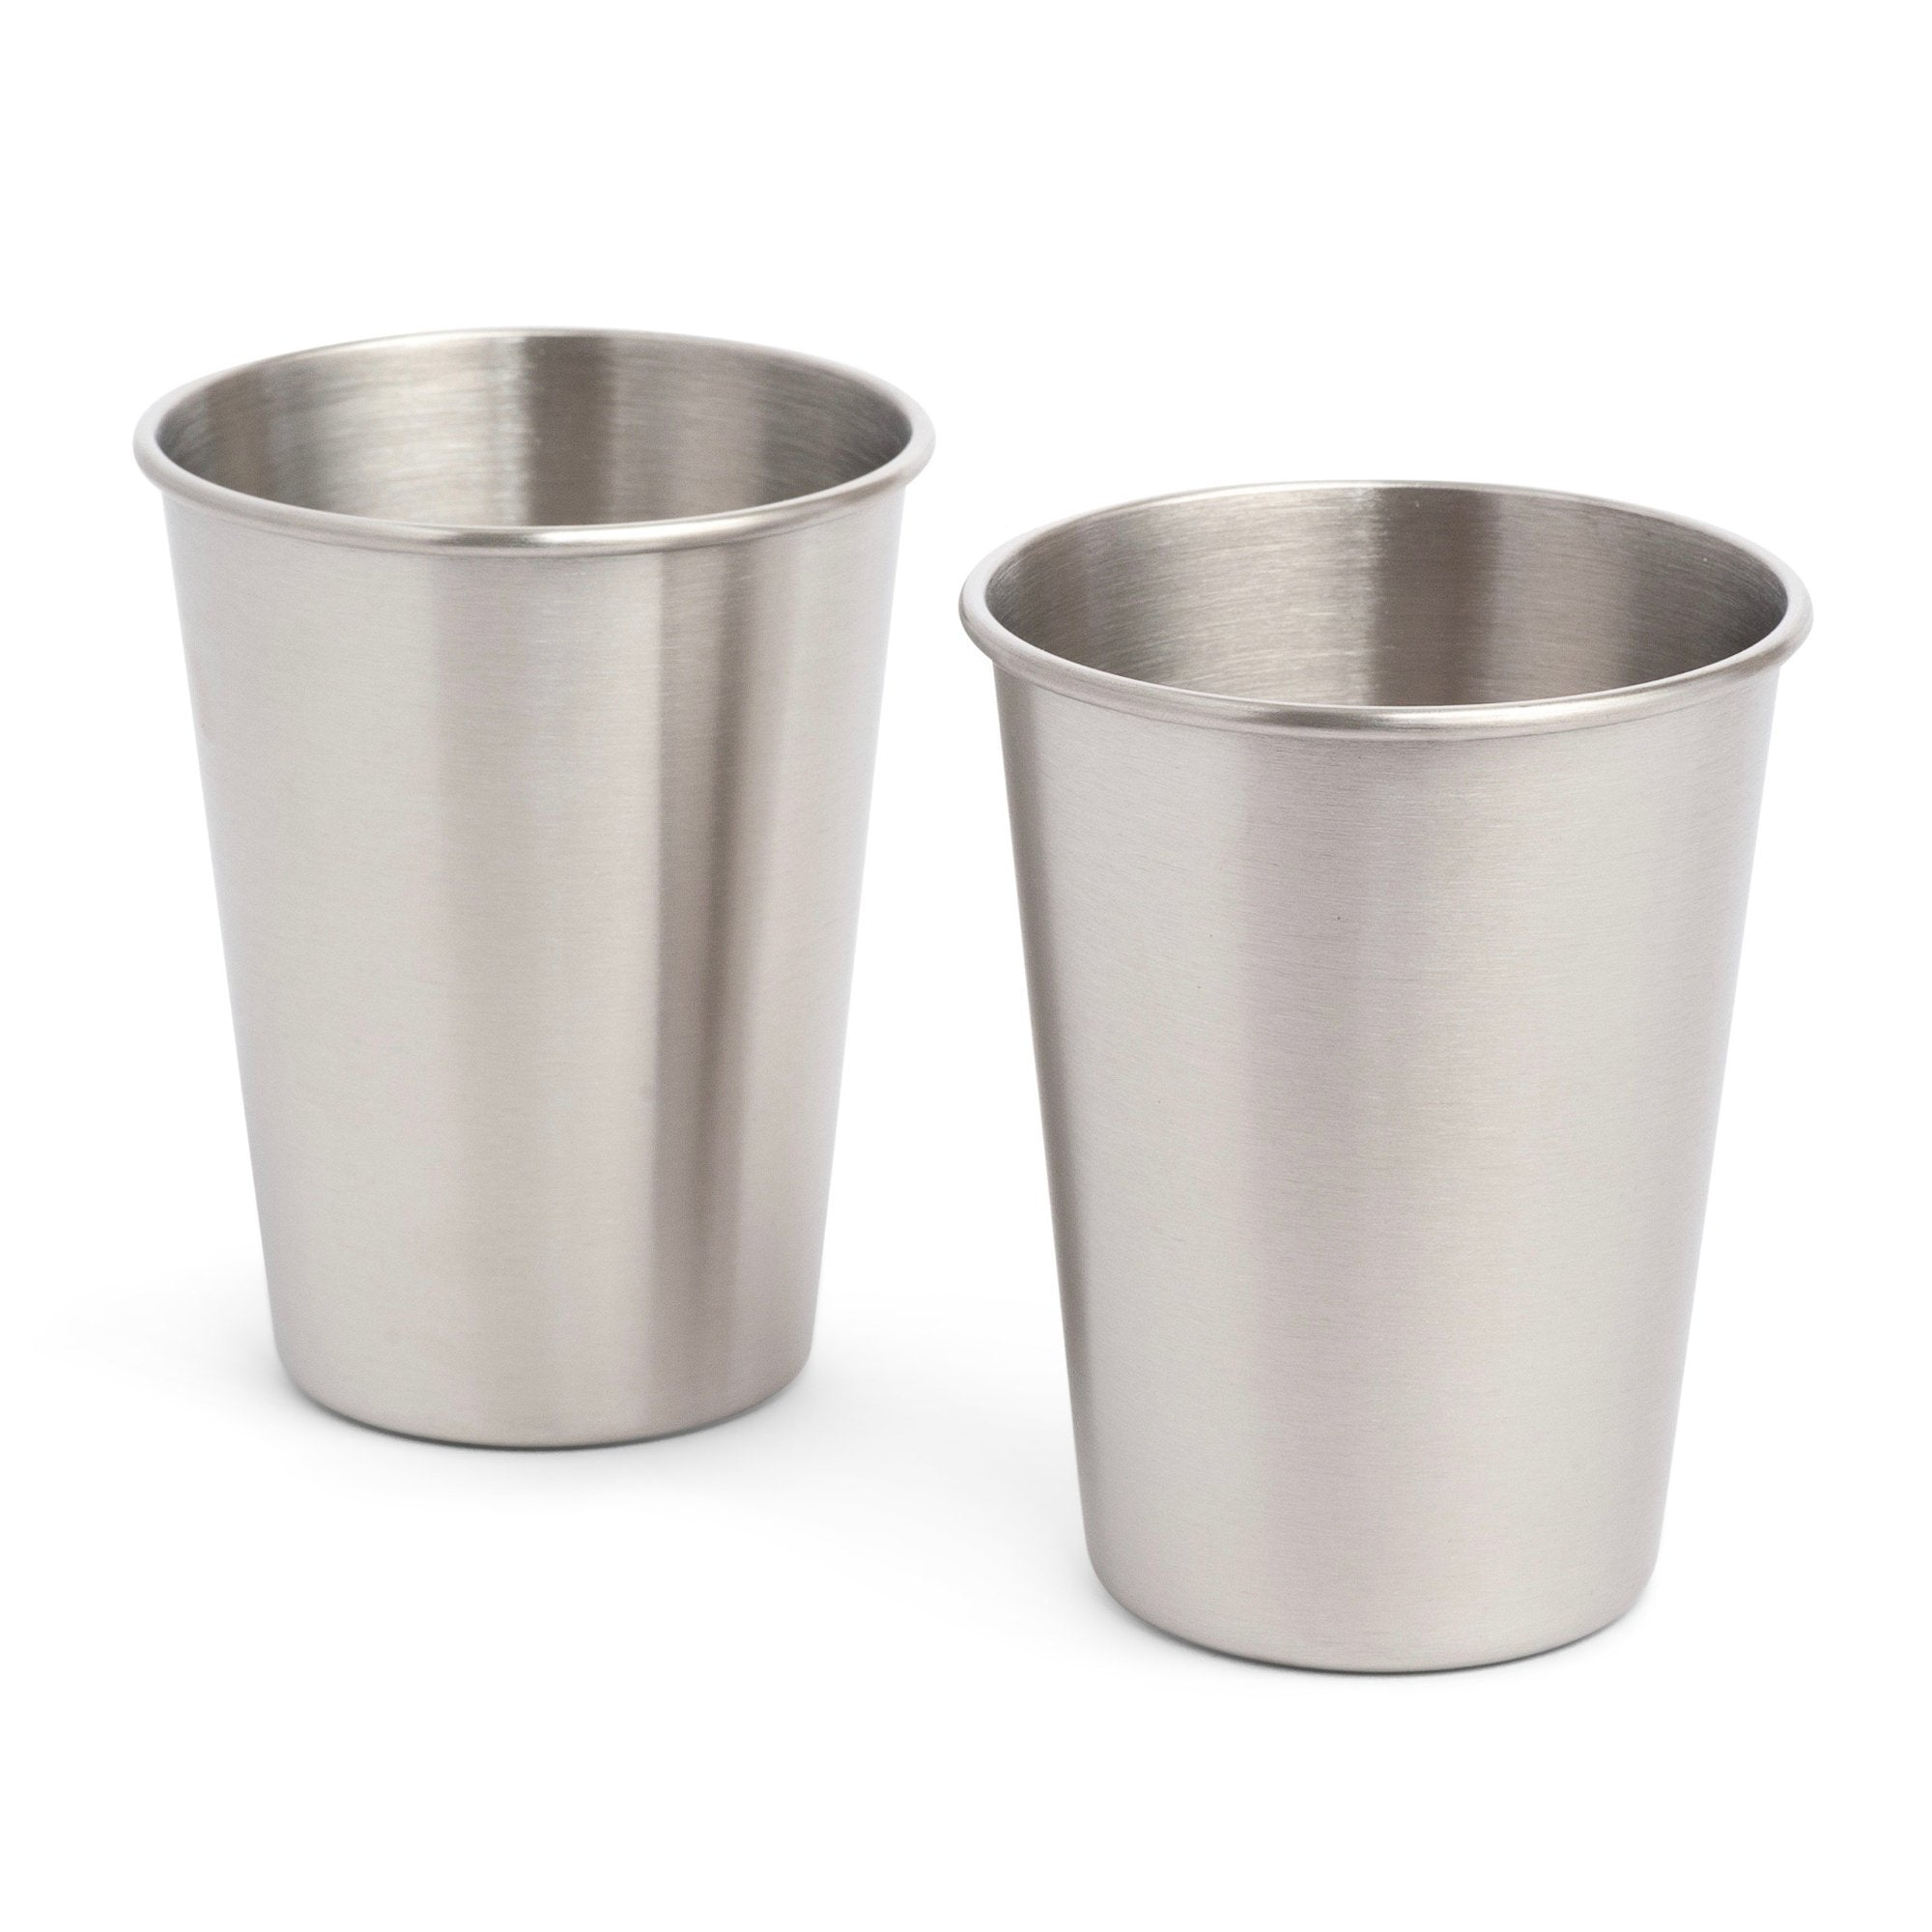 Elephant Box Stainless Steel Cup 2 pack - 350ml